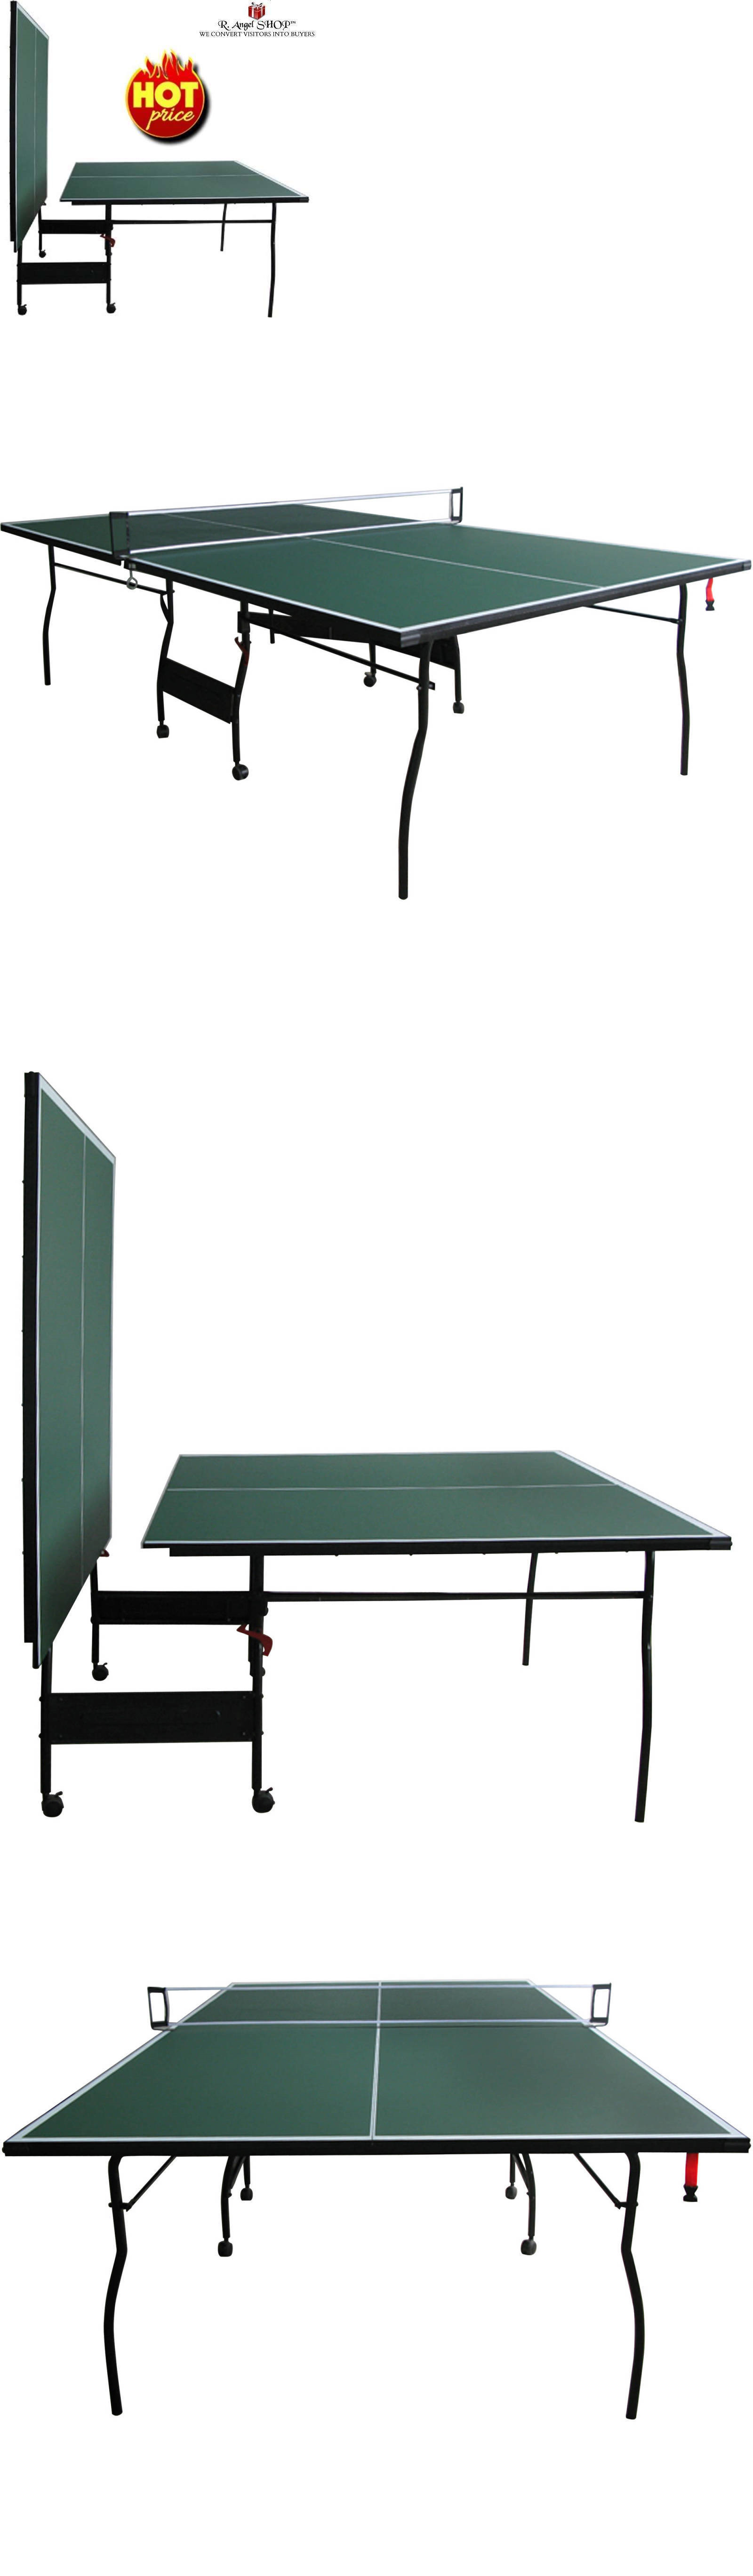 Tables 97075: Ping Pong Table Tennis Indoor Outdoor Sports Folding Portable With Net Set -> BUY IT NOW ONLY: $251.9 on eBay!